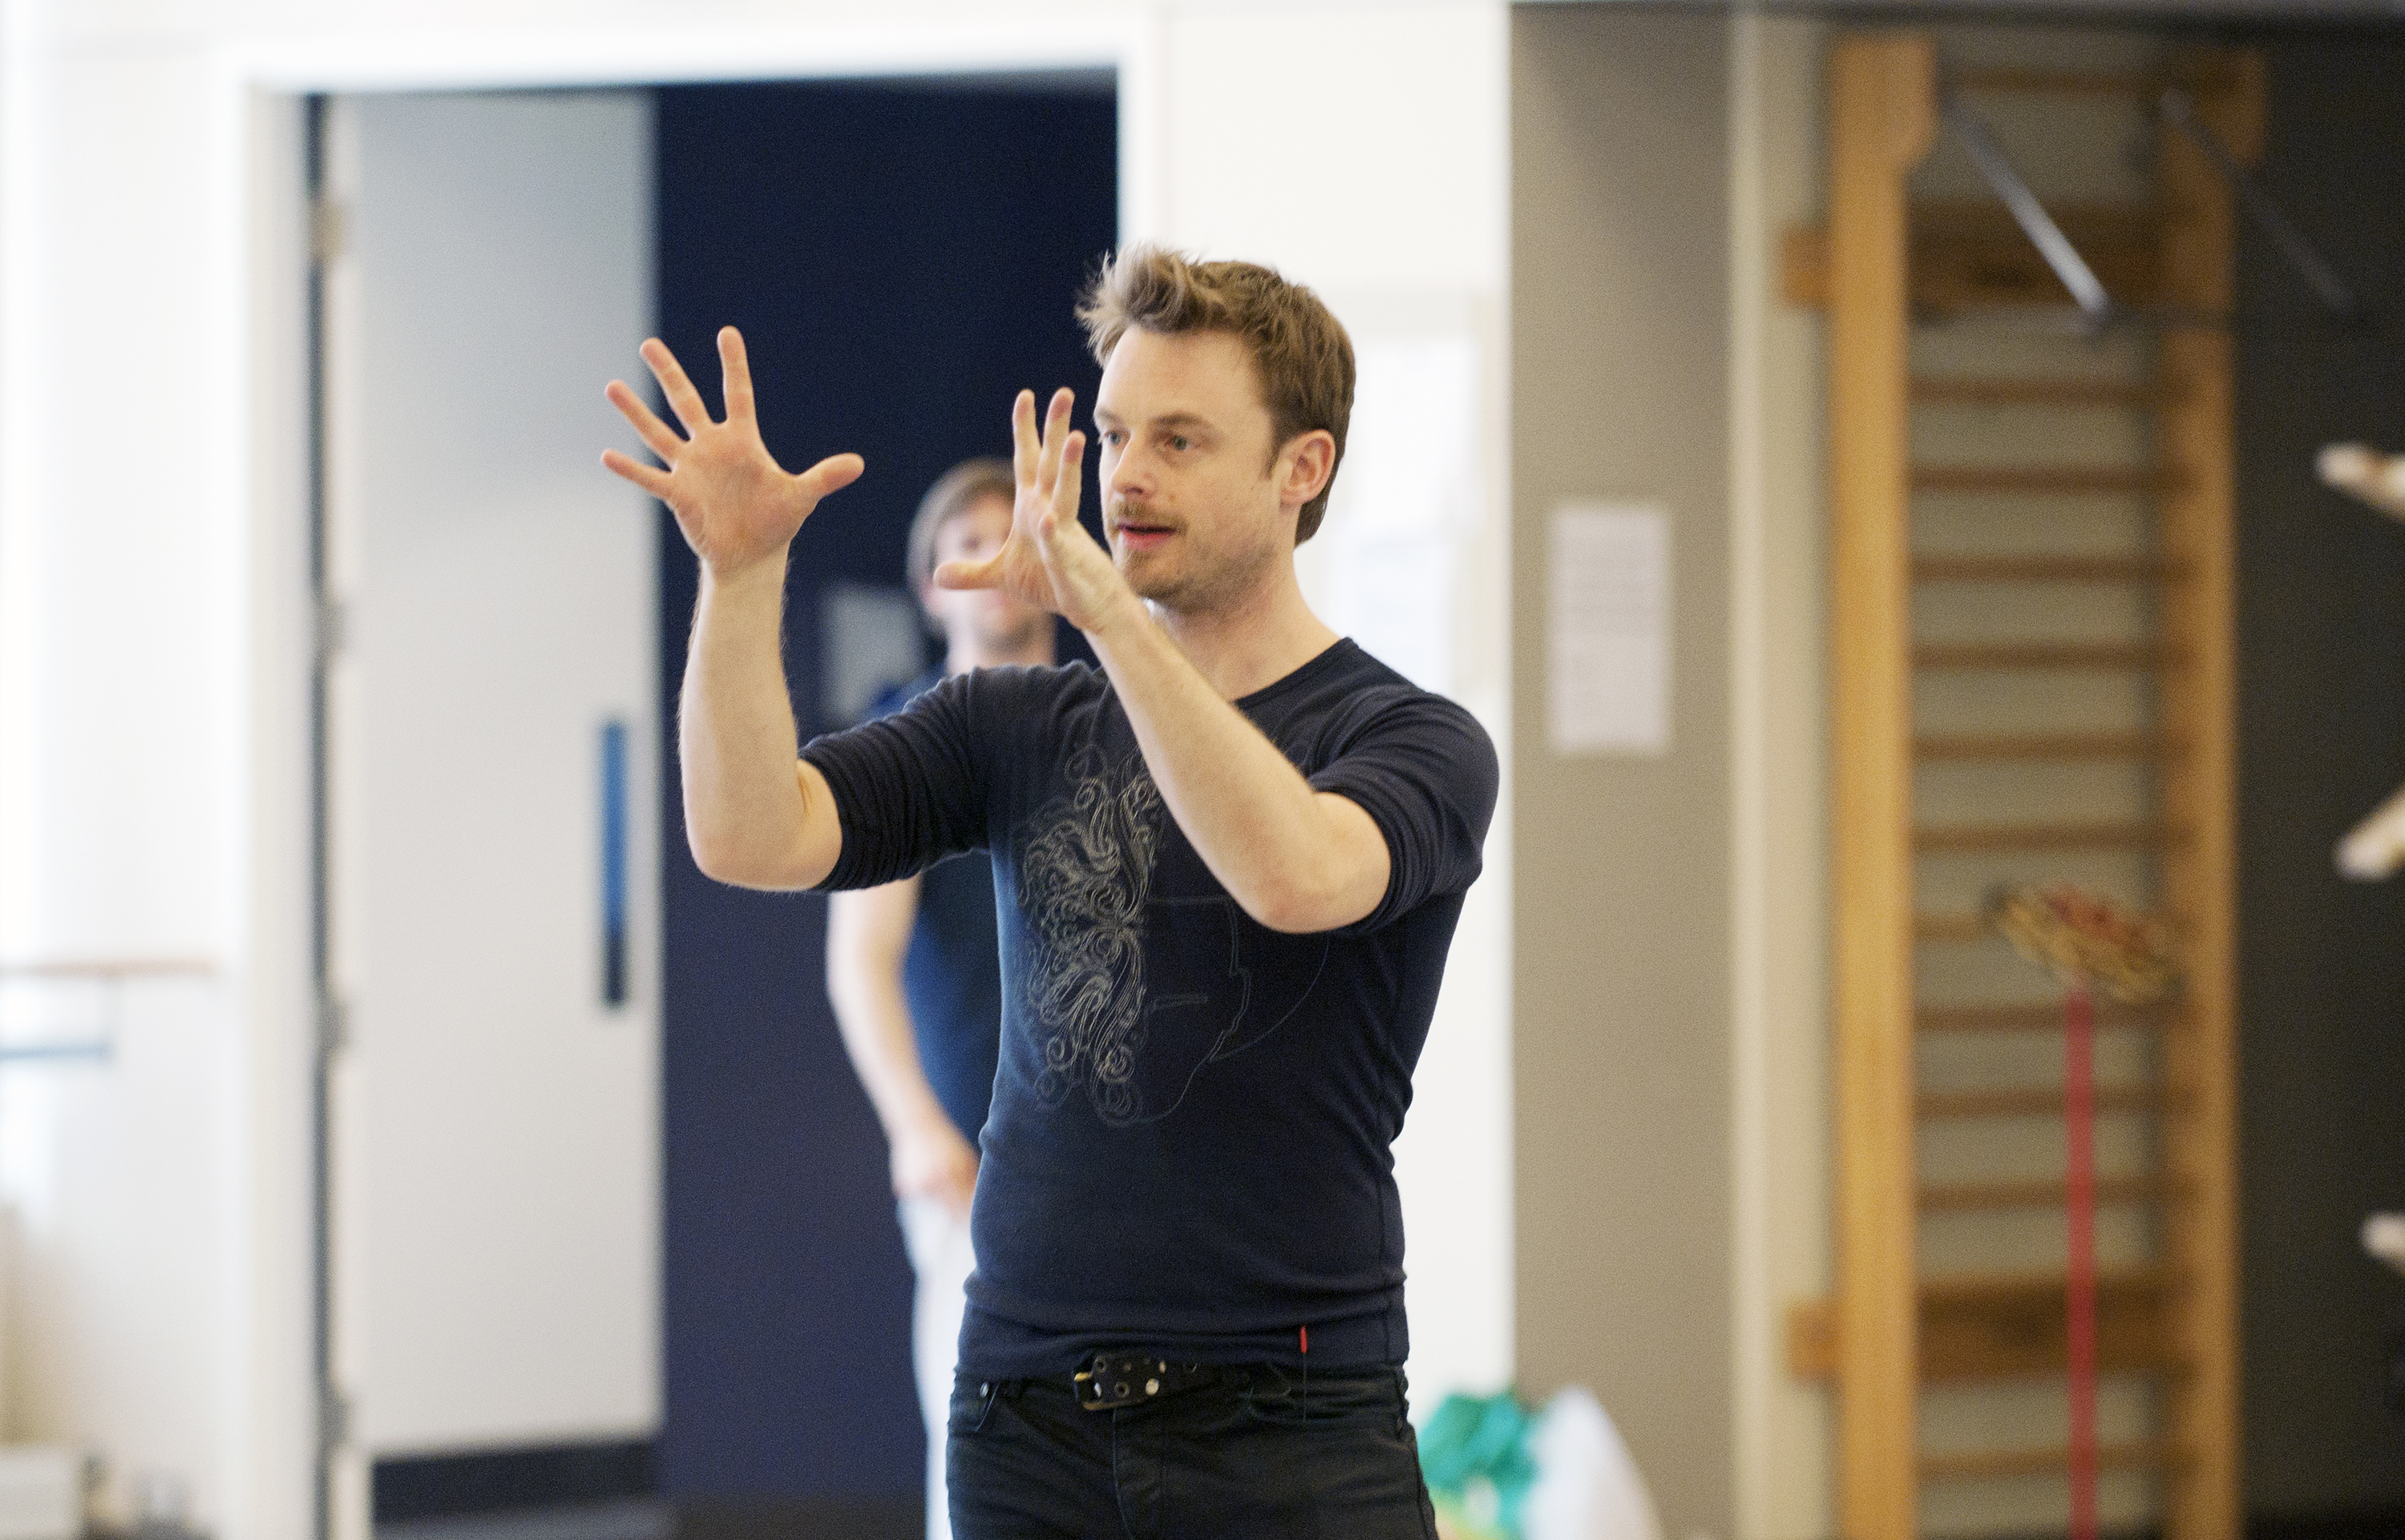 Michael Jackson Musical à Broadway pour 2020 Christopher-Wheeldon-and-Artists-of-the-Ballet-in-rehearsal-for-Alice%E2%80%99s-Adventures-in-Wonderland-vv-Photograph-Sian-Richards